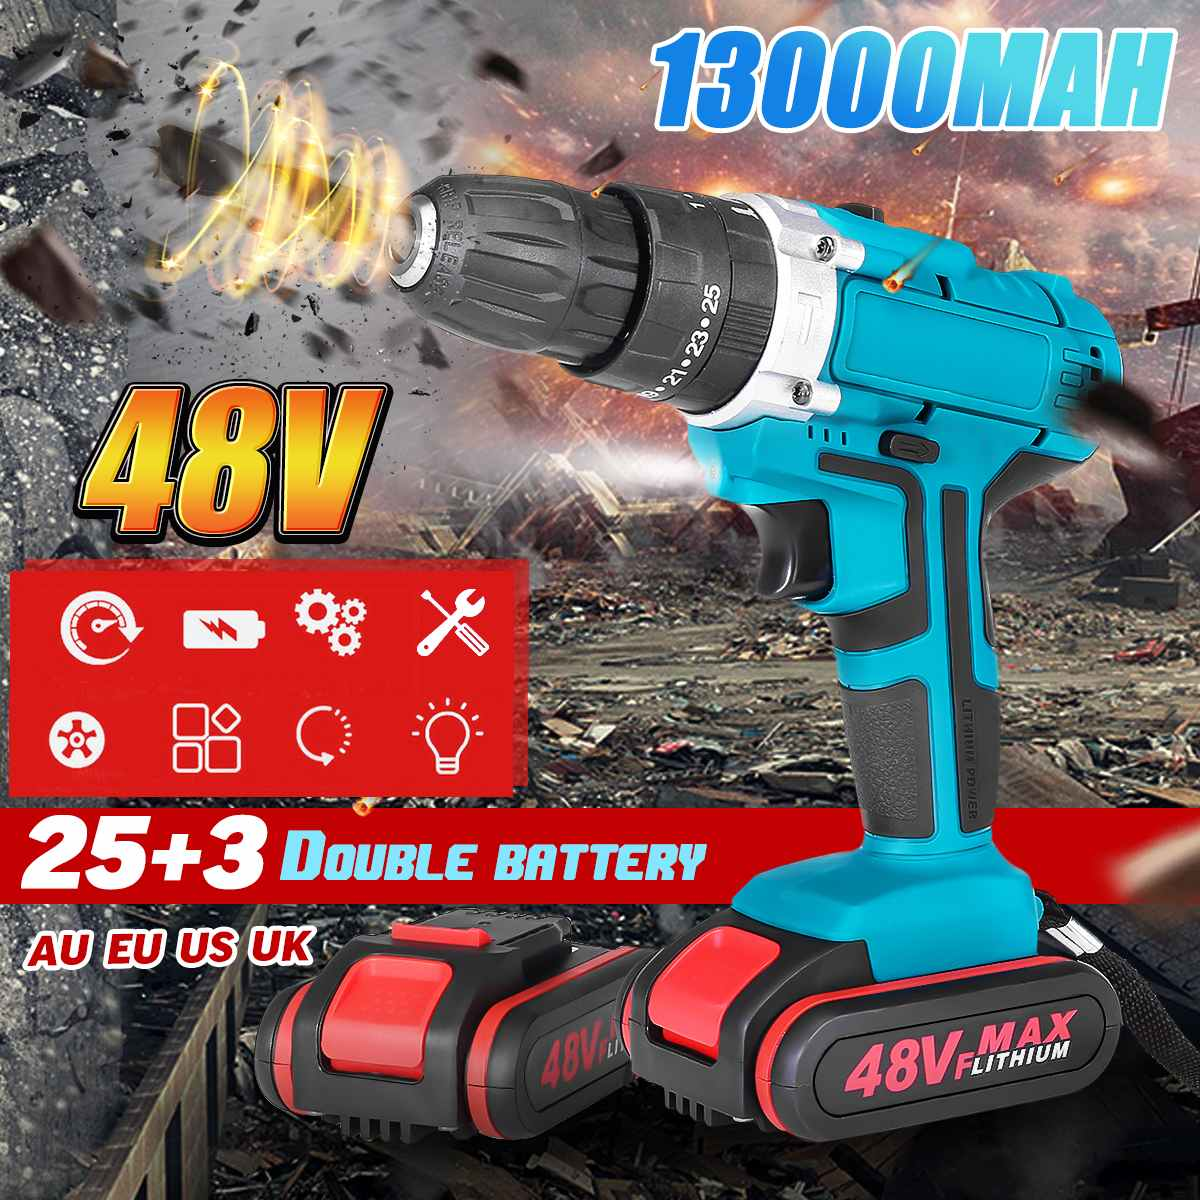 25+3 Torque Drilling Tool 48V 2 Speed Power-Drills Screwdriver Rechargeable Cordless Electric Drill 13000mAh With 2 Li-ion Batte